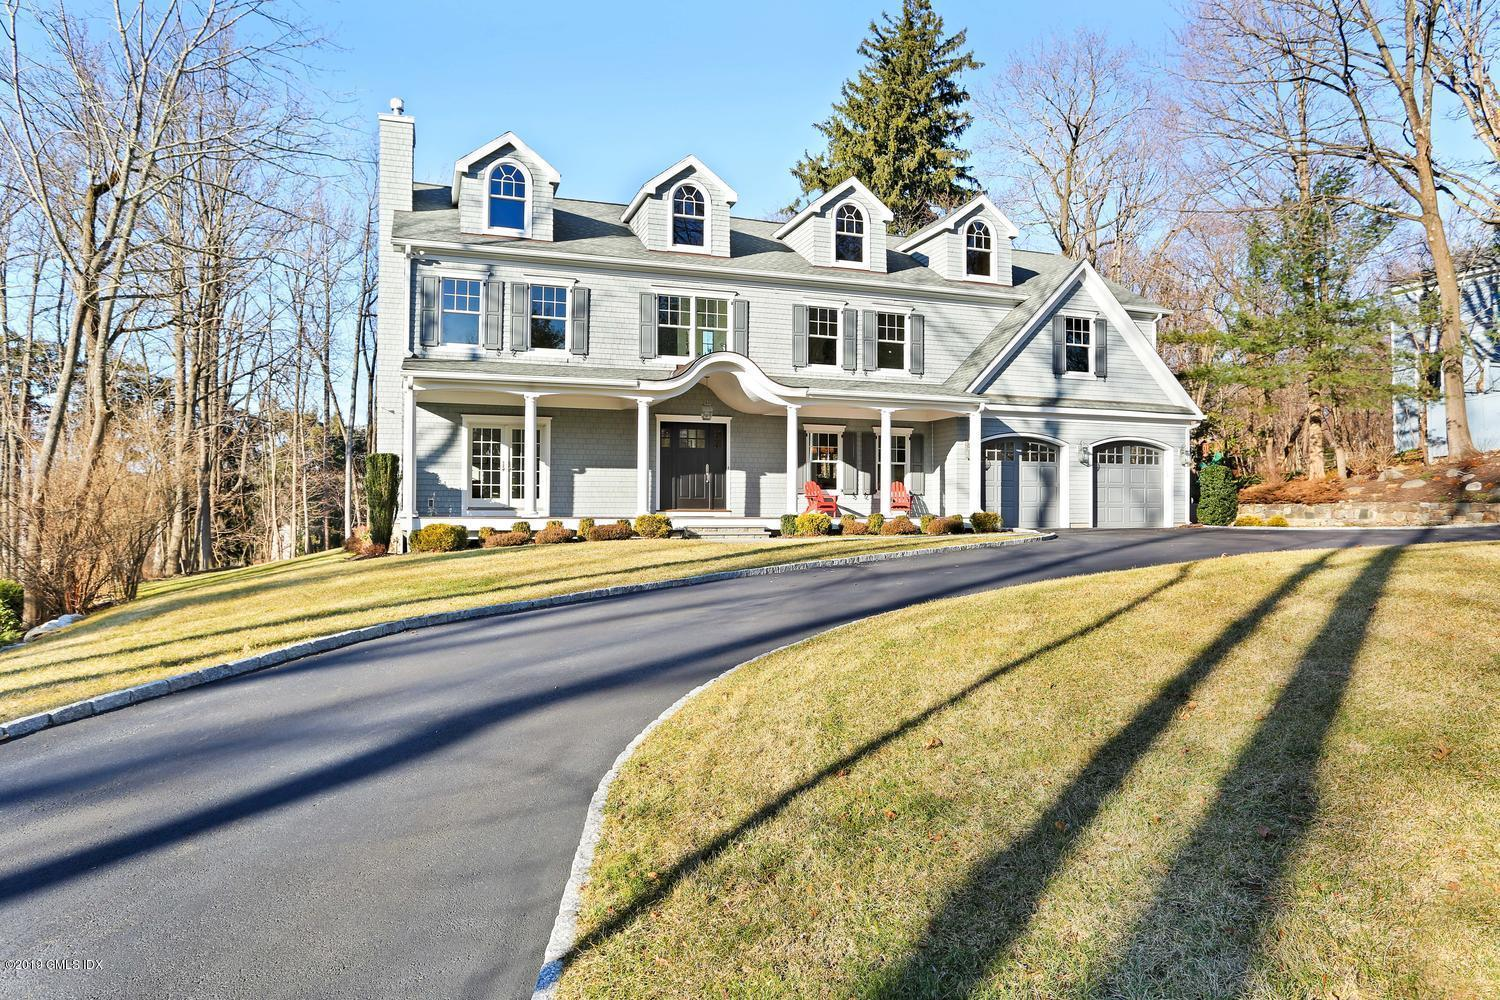 16 Norton Lane,Old Greenwich,Connecticut 06870,6 Bedrooms Bedrooms,5 BathroomsBathrooms,Single family,Norton,105188